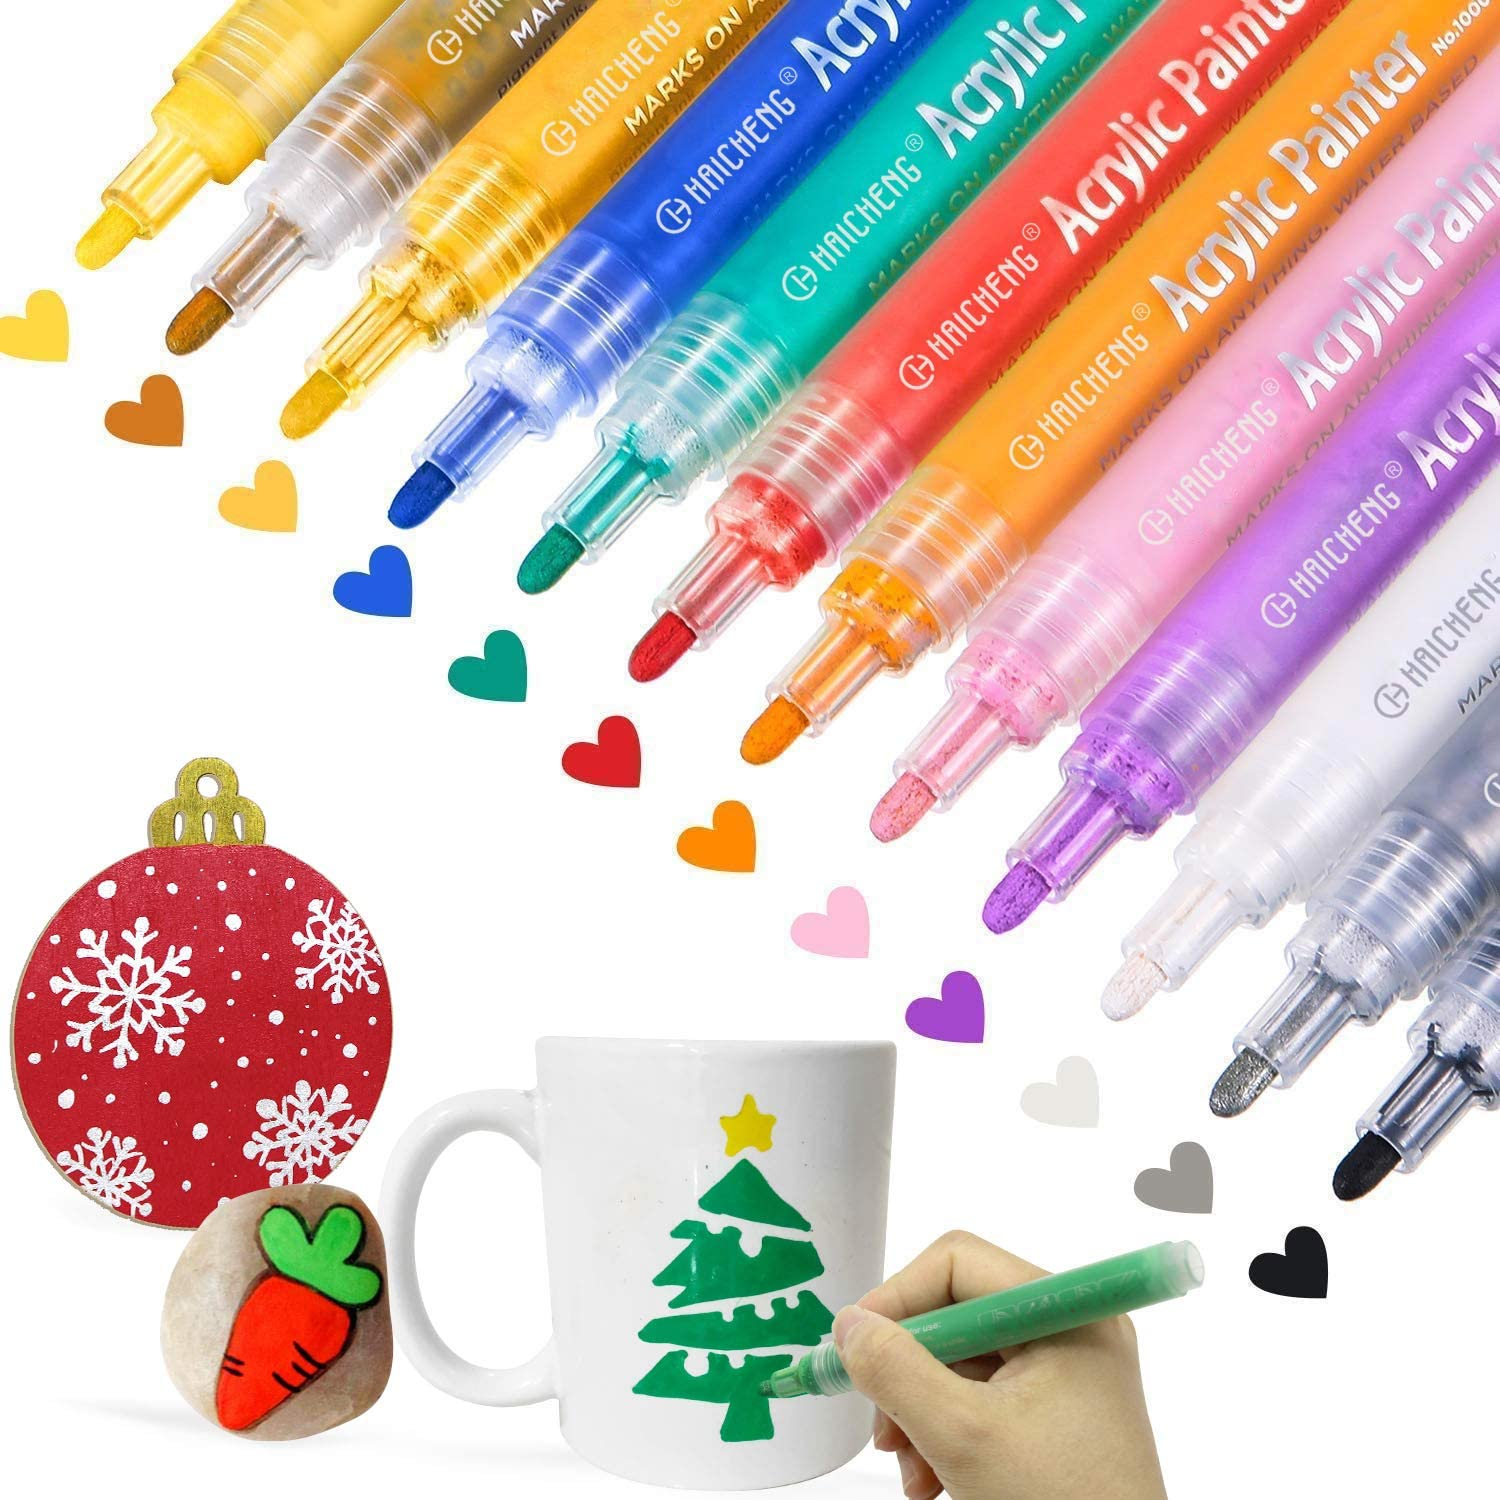 Acrylic Paint Marker Pens for Wood Plastic Canvas Card Making Set of 12 Colors Markers Water Based Paint Pen Suitable for Almost all Surfaces Ceramic Mugs DIY Craft Stone Glass Metel